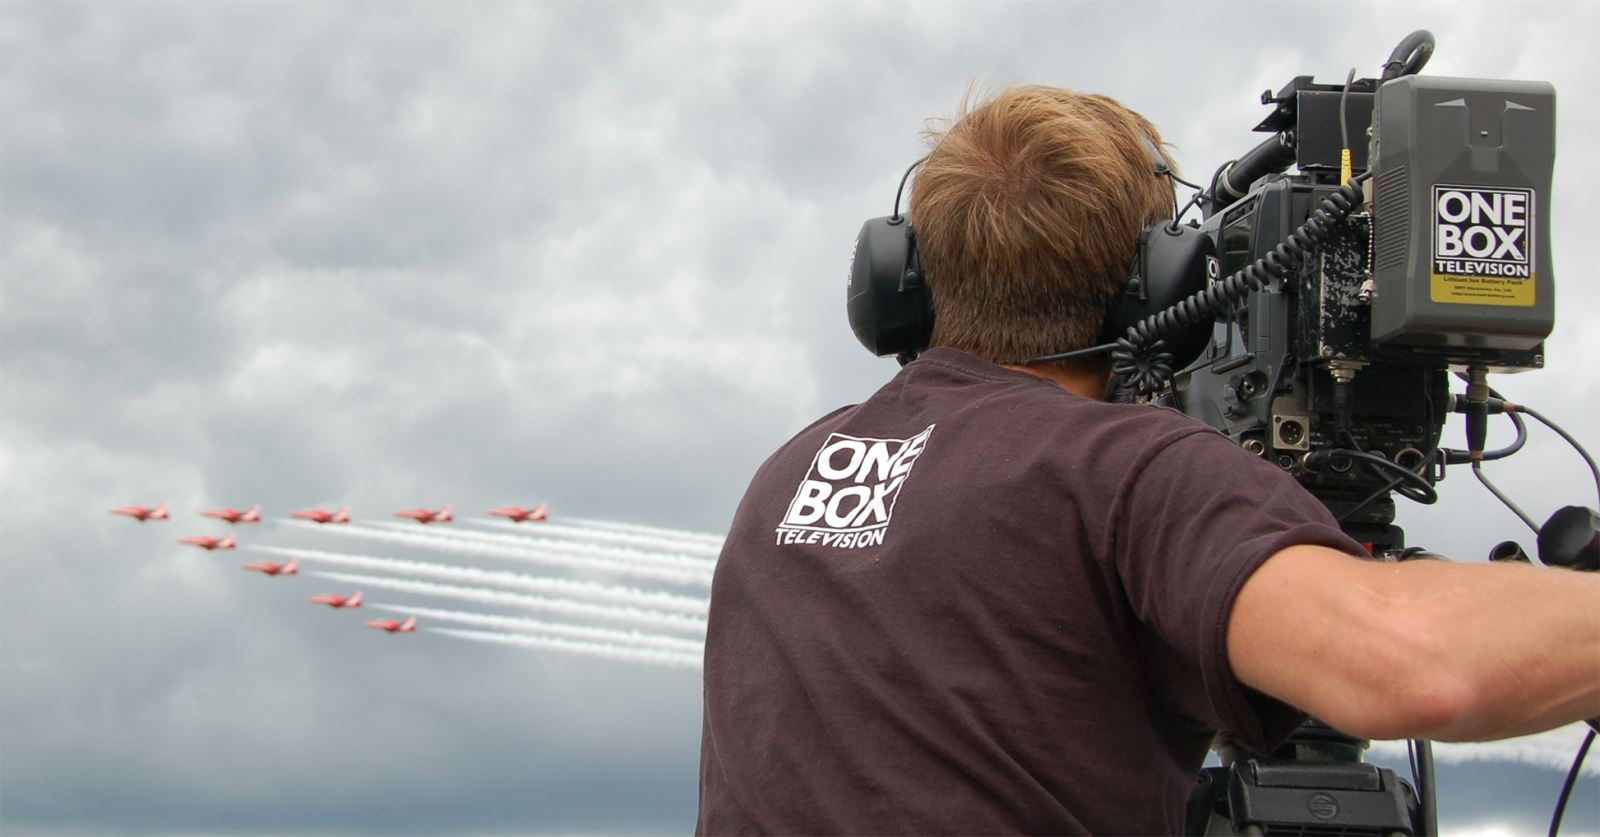 One Box TV camera operator filming the Red Arrows at the Farnborough Air Show